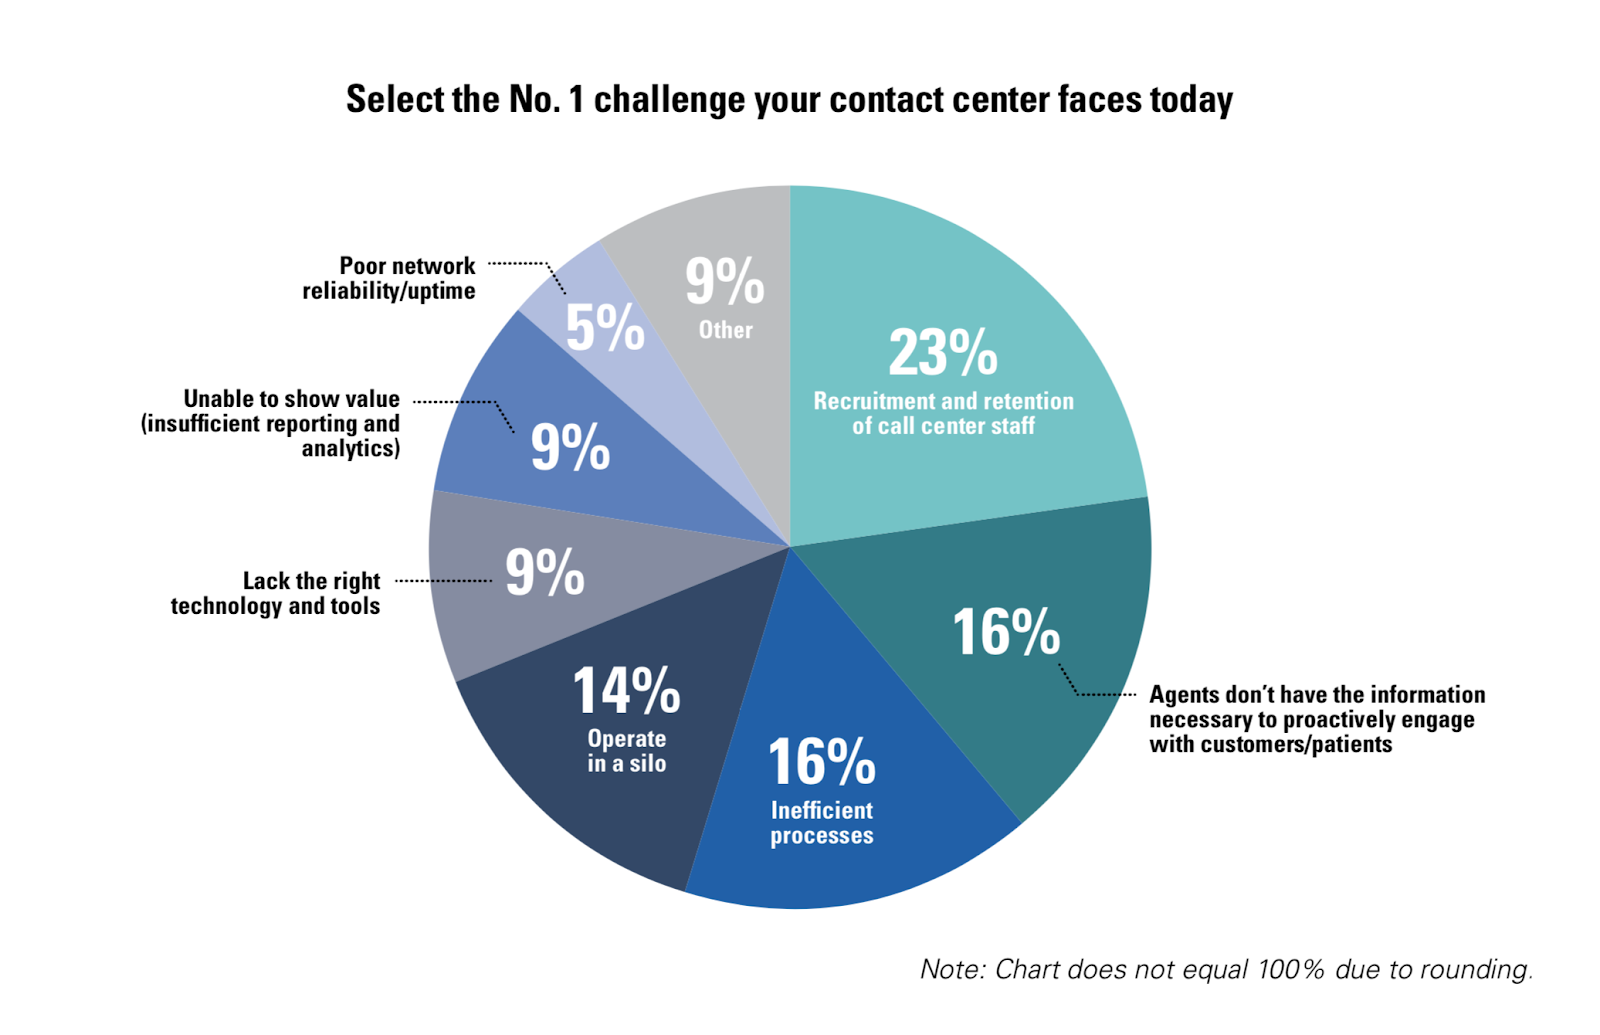 Challenges faced by contact centers